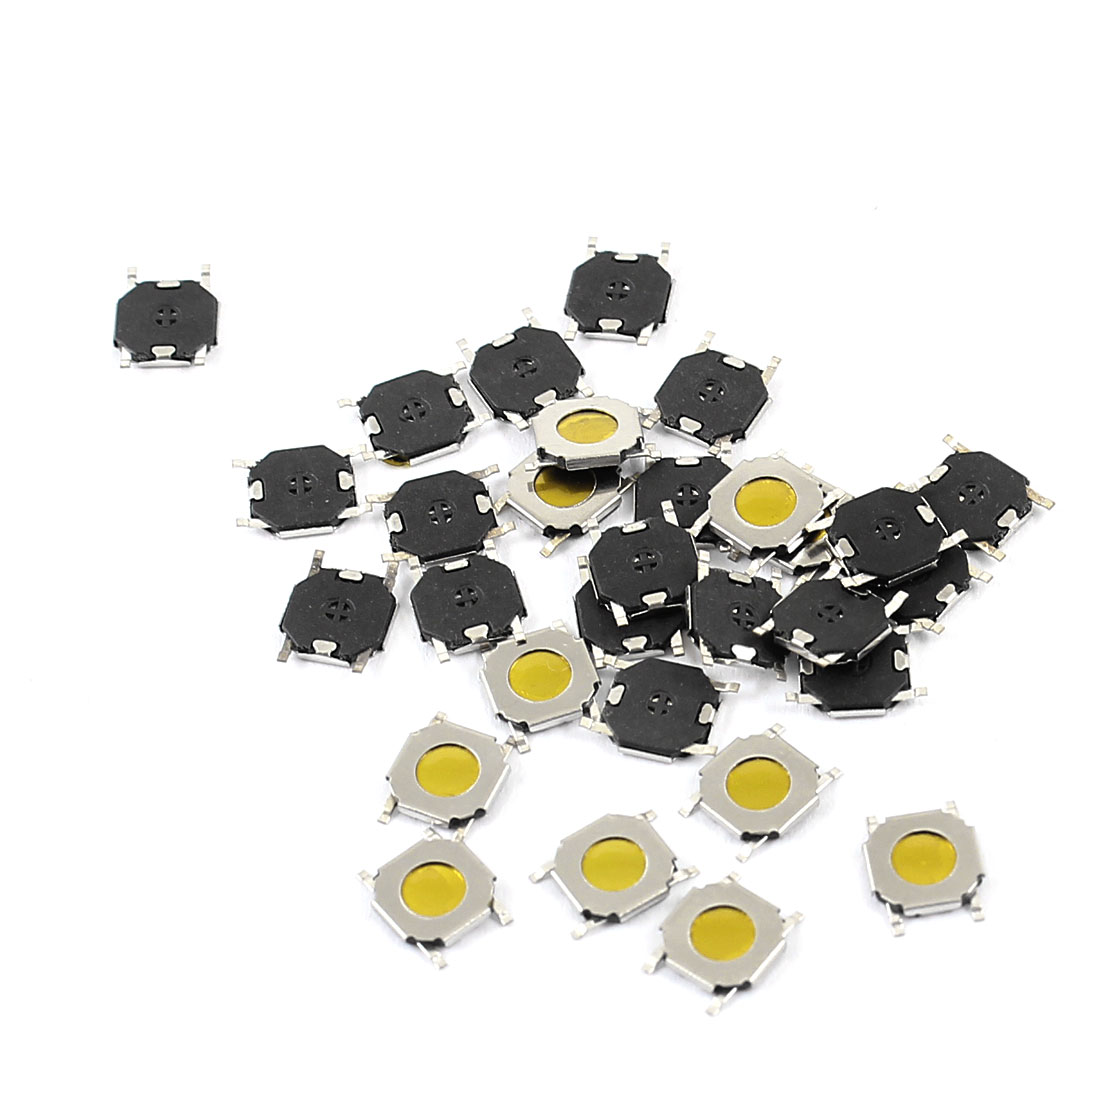 30pcs Panel PCB SMD Momentary 4-Pin SPST Tactile Tact Switch 4mmx4mmx1.0mm